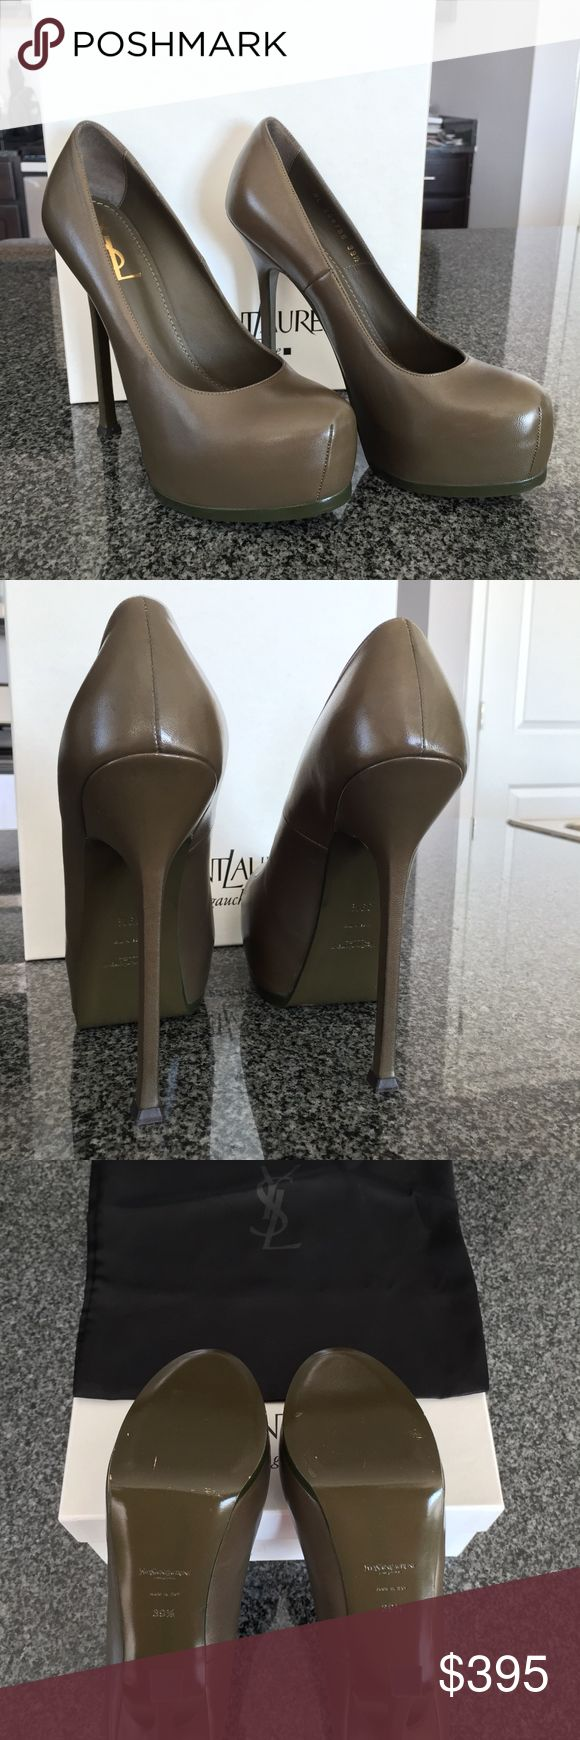 """Yves Saint Laurent Tribtoo Napa Pump 39.5 Brand New! Never worn except around Saks Fifth Avenue during purchase! Description from neimanmarcus.com: This pump pulls no punches. A dramatic platform lifts a simply silhouetted leather Yves Saint Laurent pump. Napa leather pump with tonal topstitching. Darted crescent toe; 1 1/4"""" hidden platform. 5 1/2"""" covered heel; 4 1/4"""" equiv. """"Tribtoo"""" is made in Italy. Yves Saint Laurent Shoes Heels"""